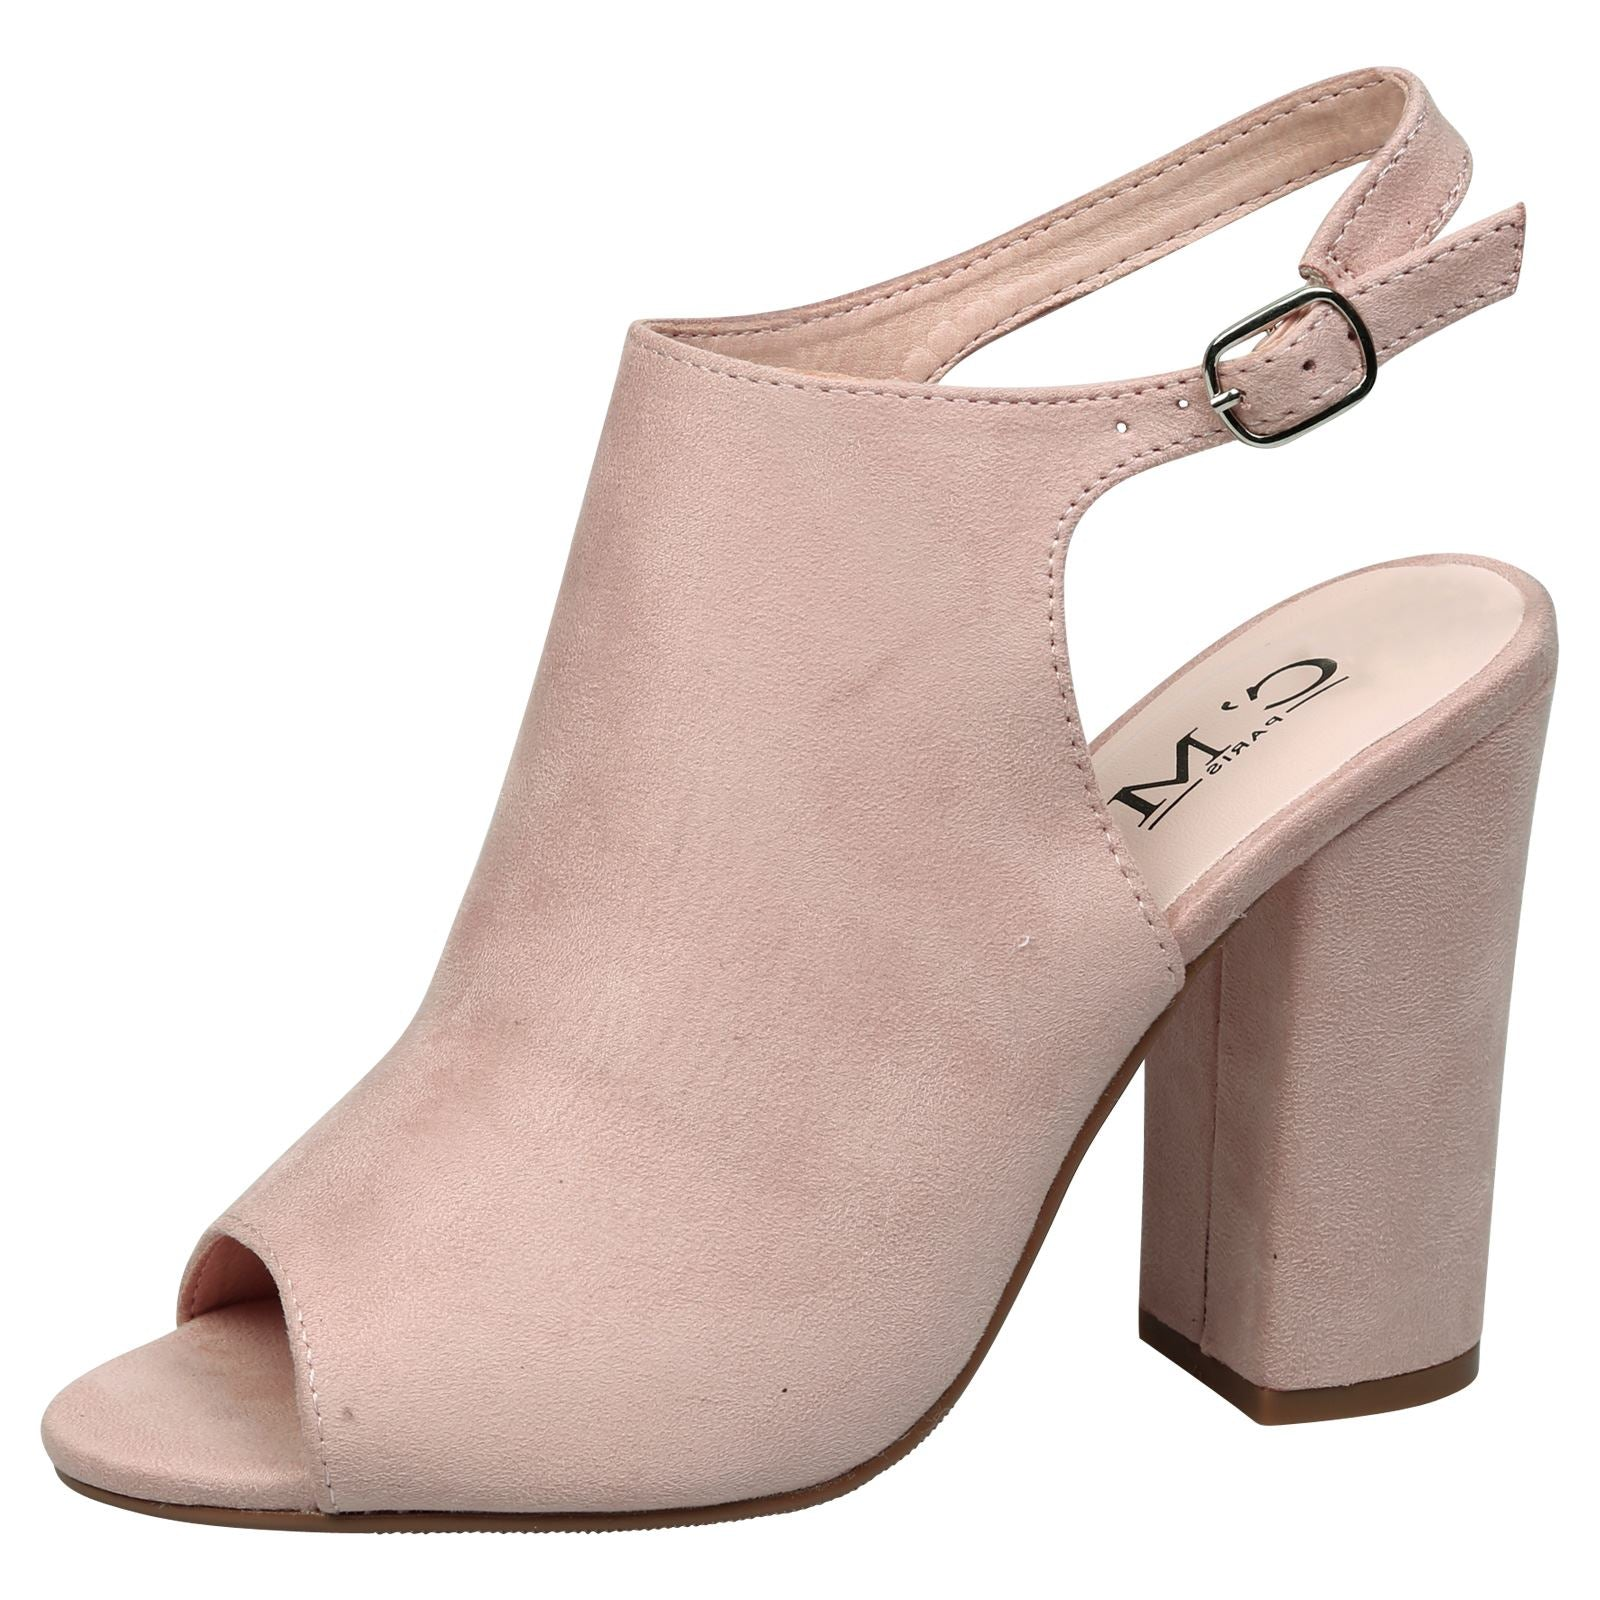 Felicia Slingback Peep Toe Ankle Boots in Pink Faux Suede